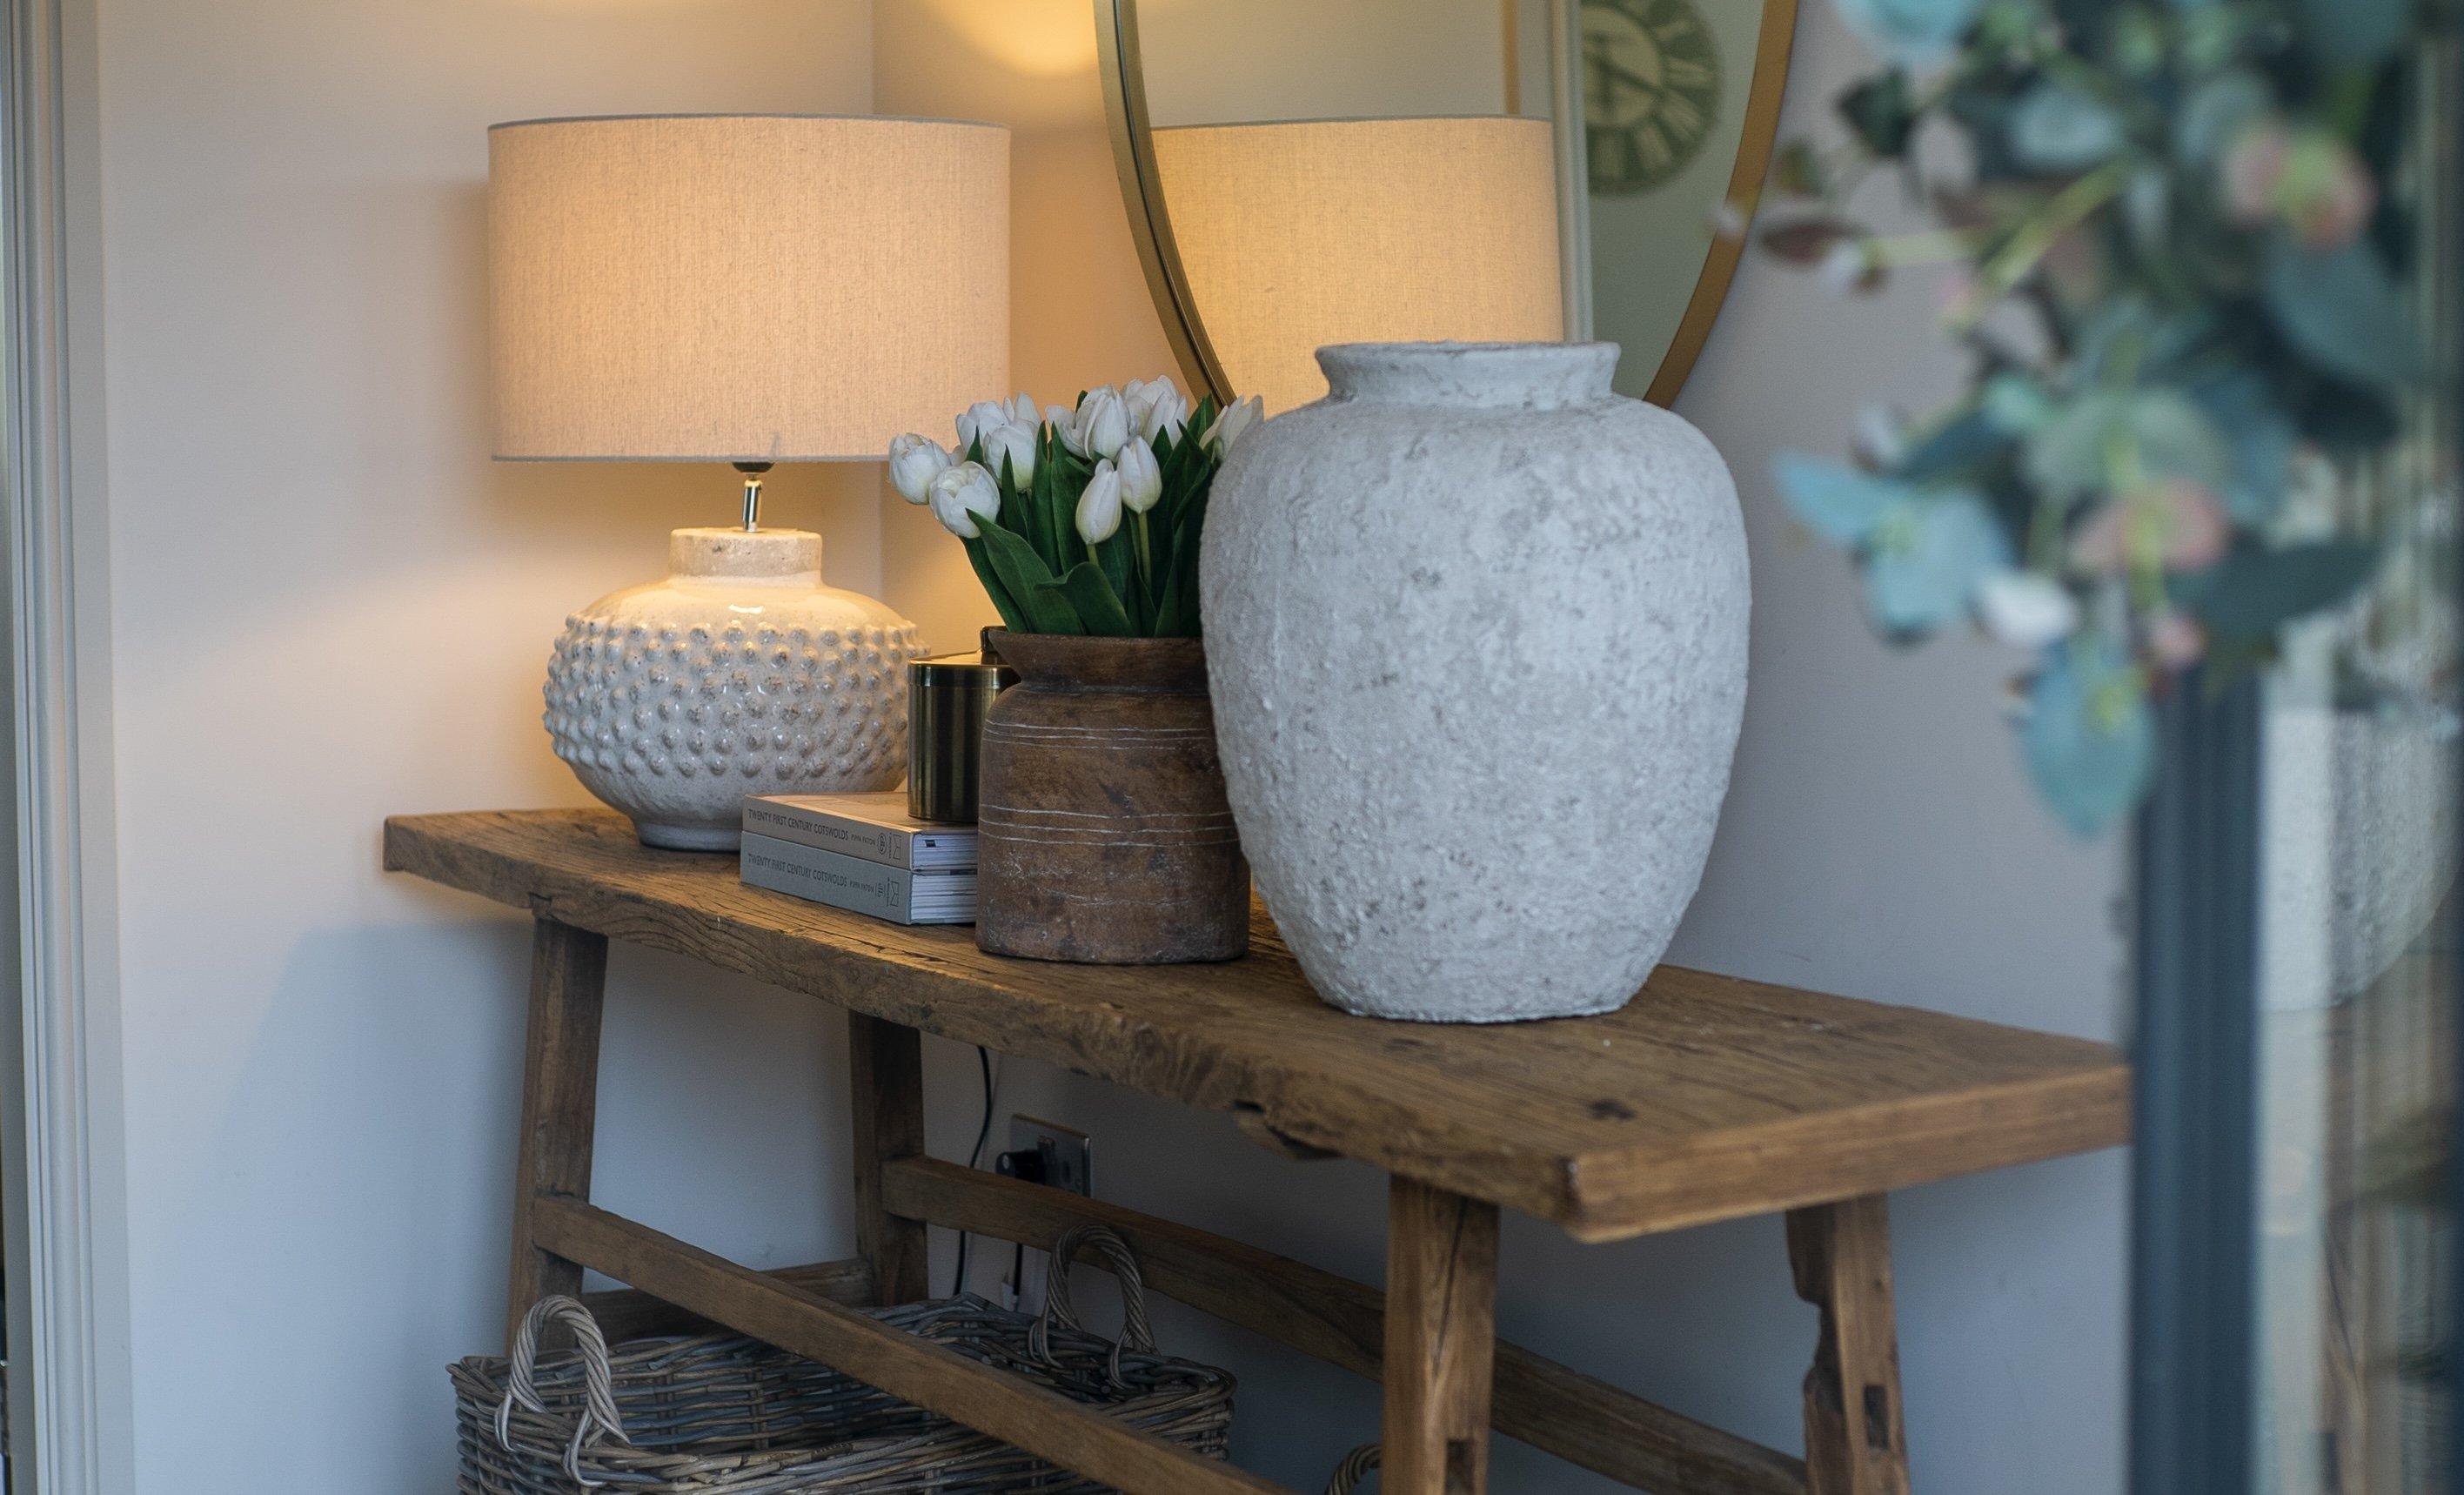 How Do I Style My Console Table?